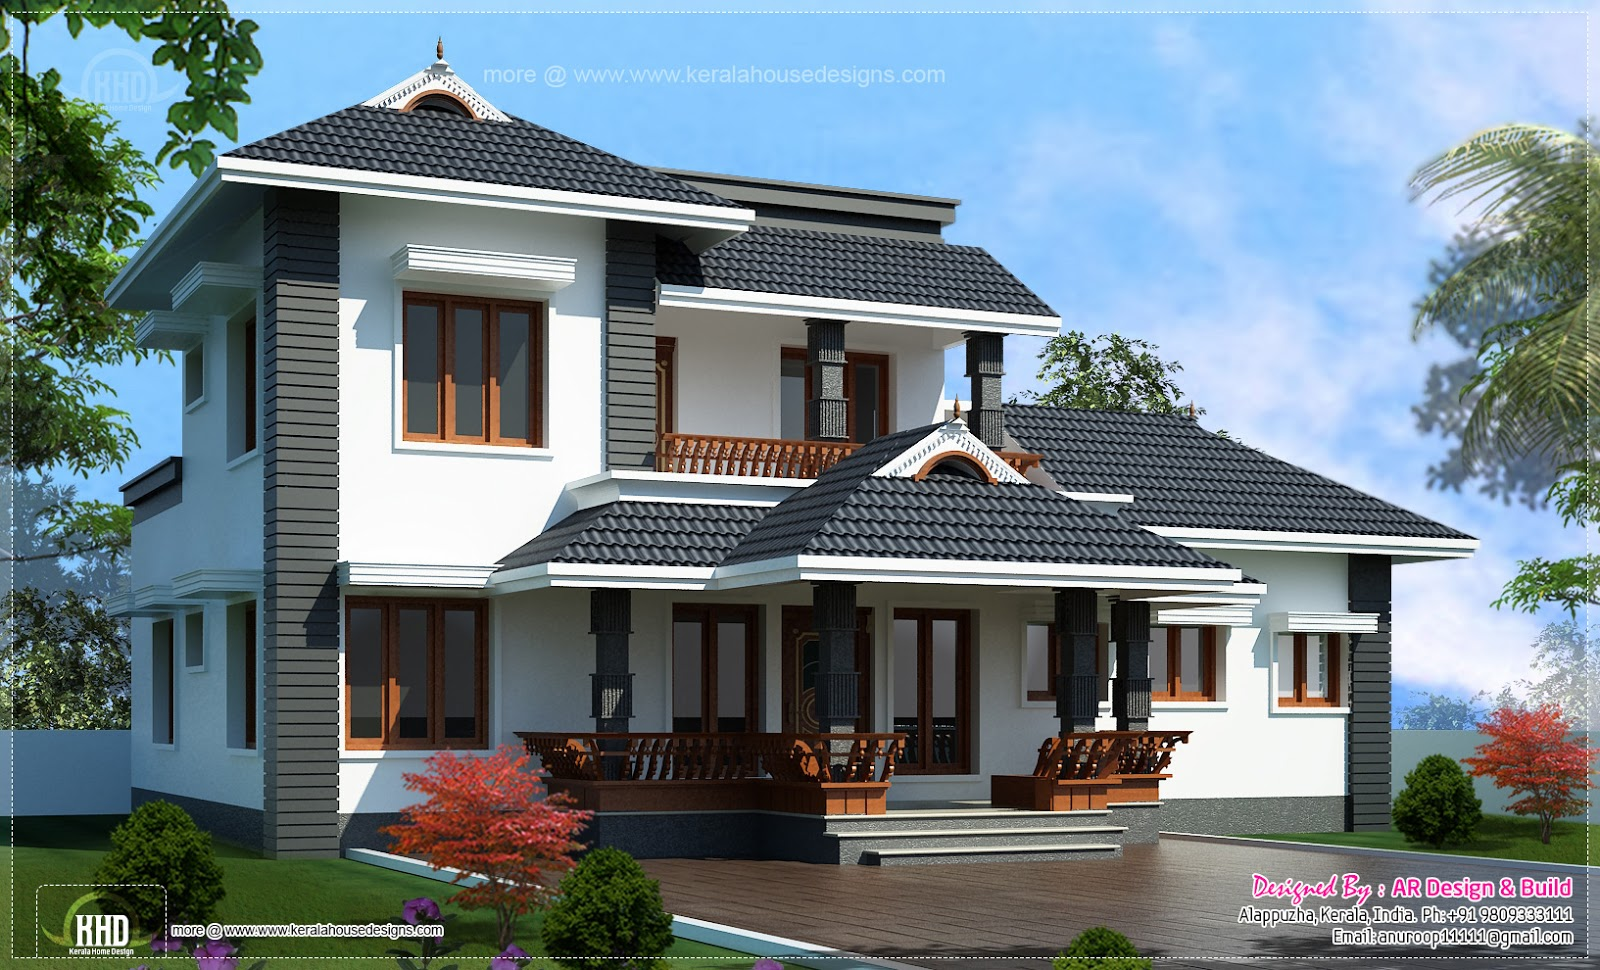 2000 4 bedroom sloping roof residence kerala for Home designs 2000 sq ft